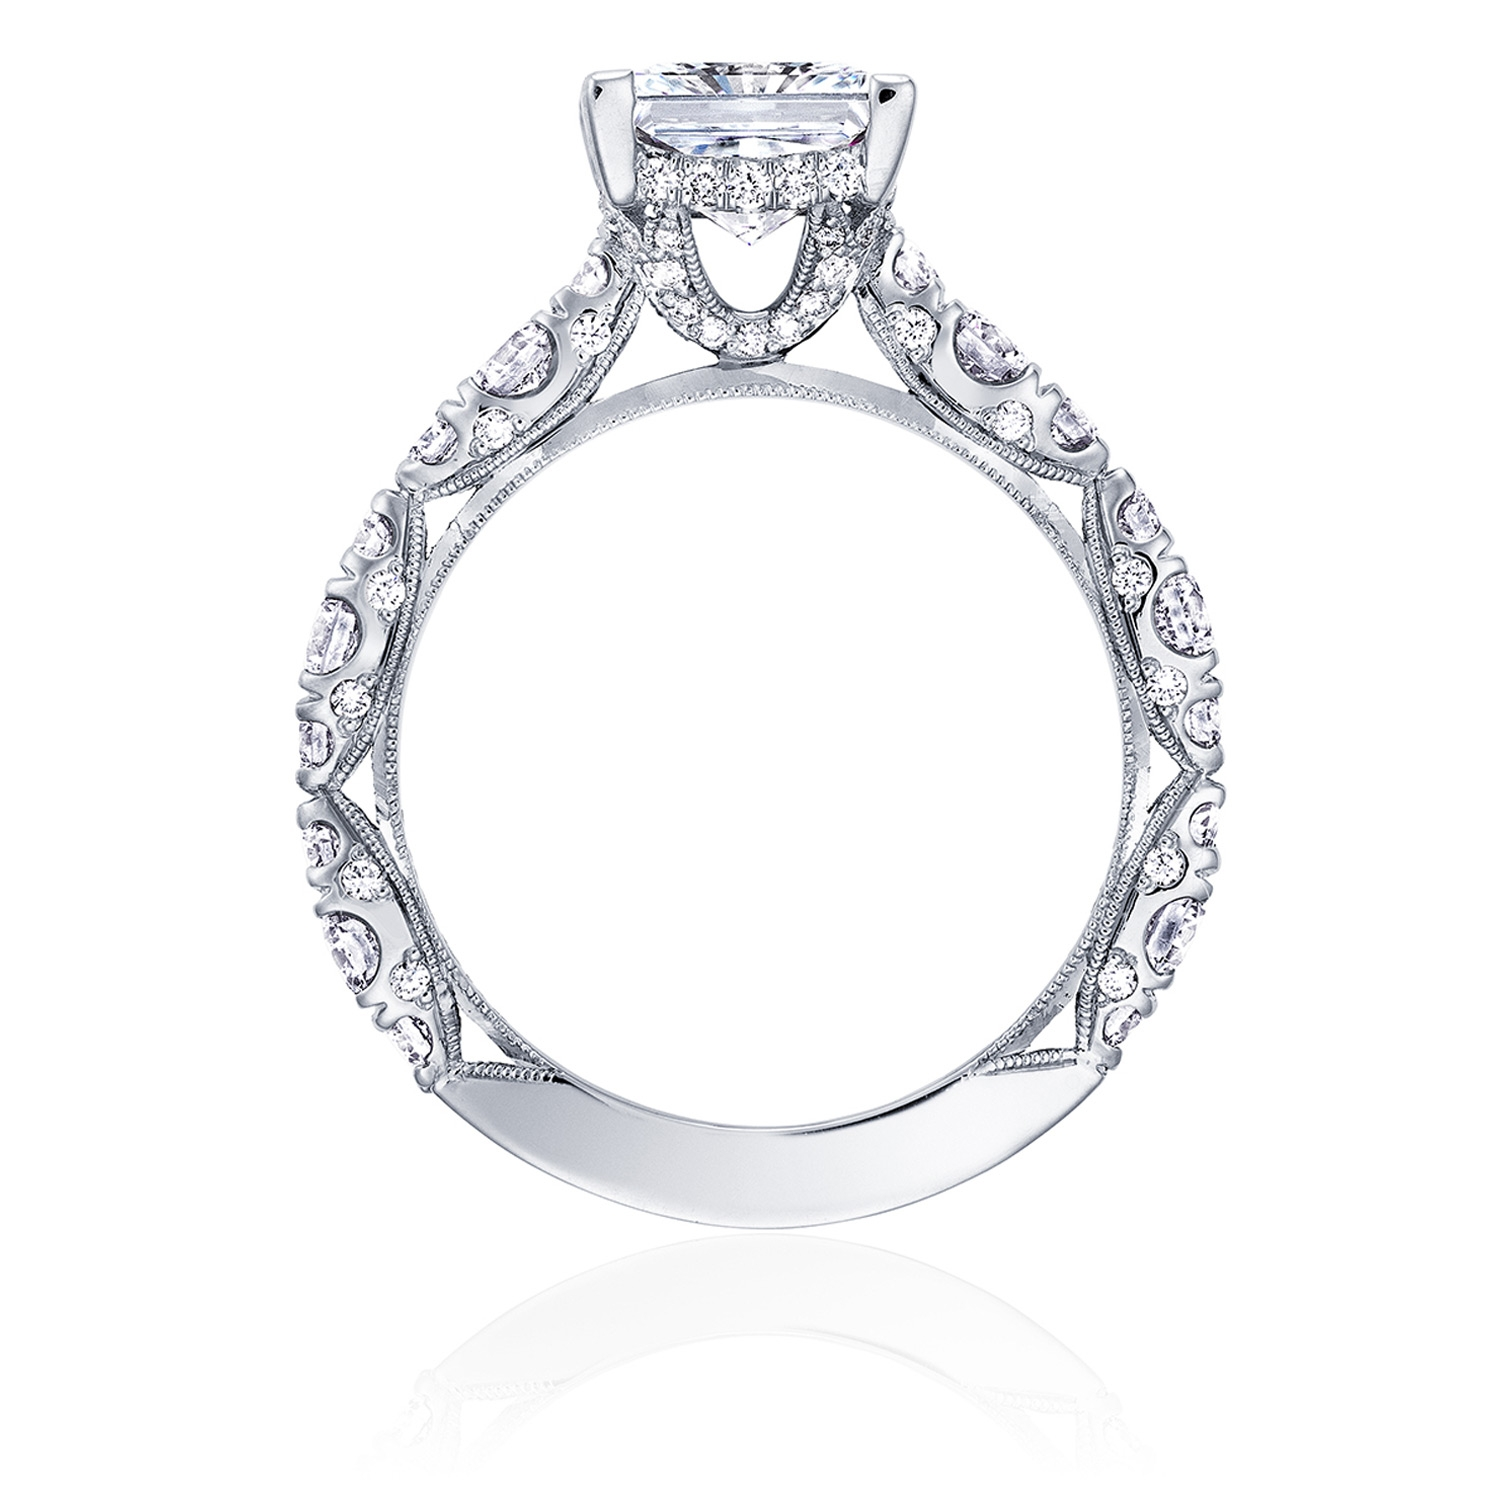 HT2654PR7 Platinum Tacori RoyalT Engagement Ring Alternative View 1